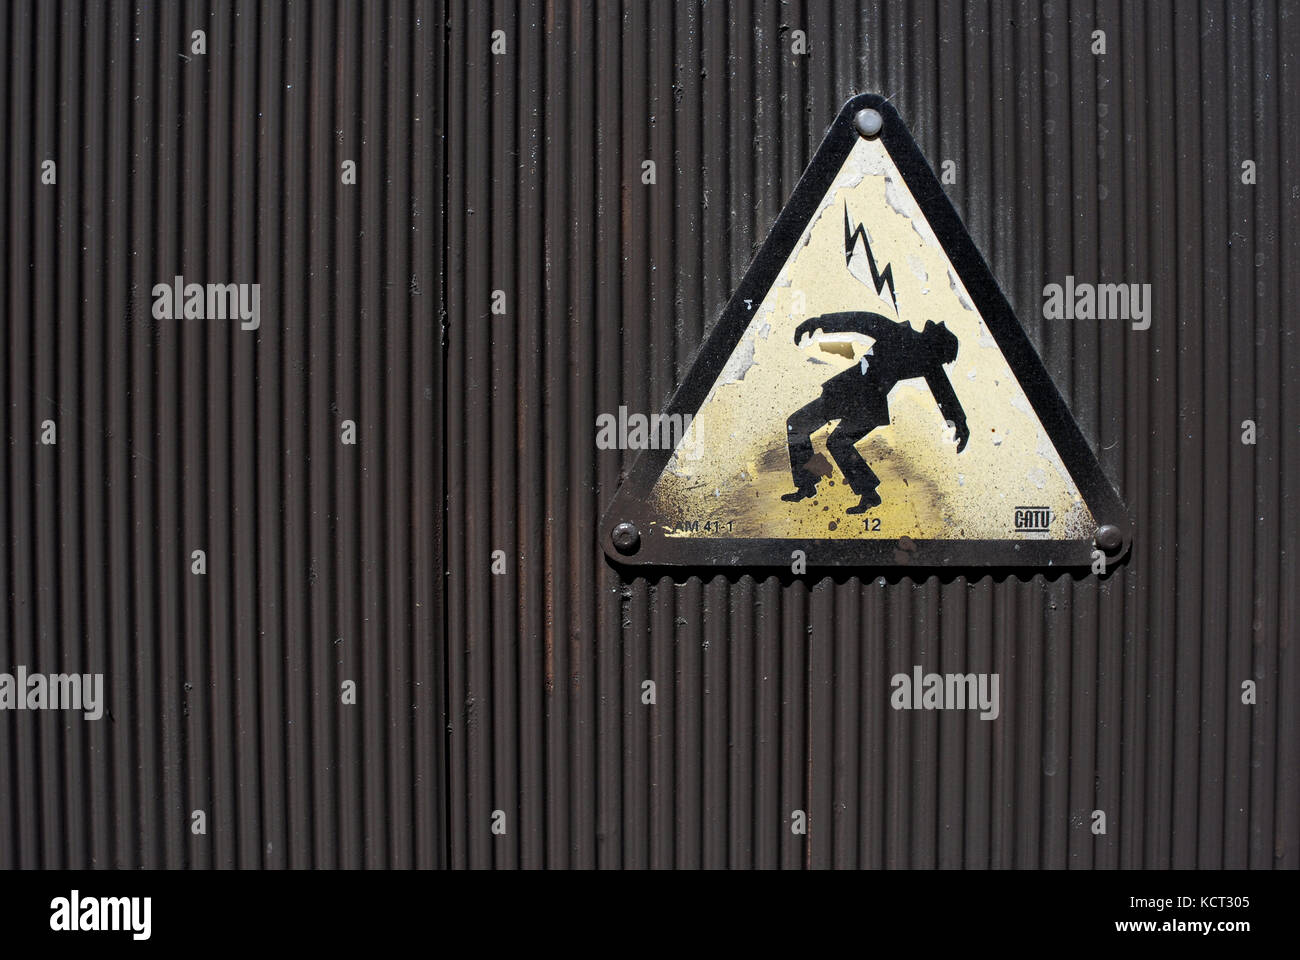 electricity sign stockfotos electricity sign bilder alamy. Black Bedroom Furniture Sets. Home Design Ideas